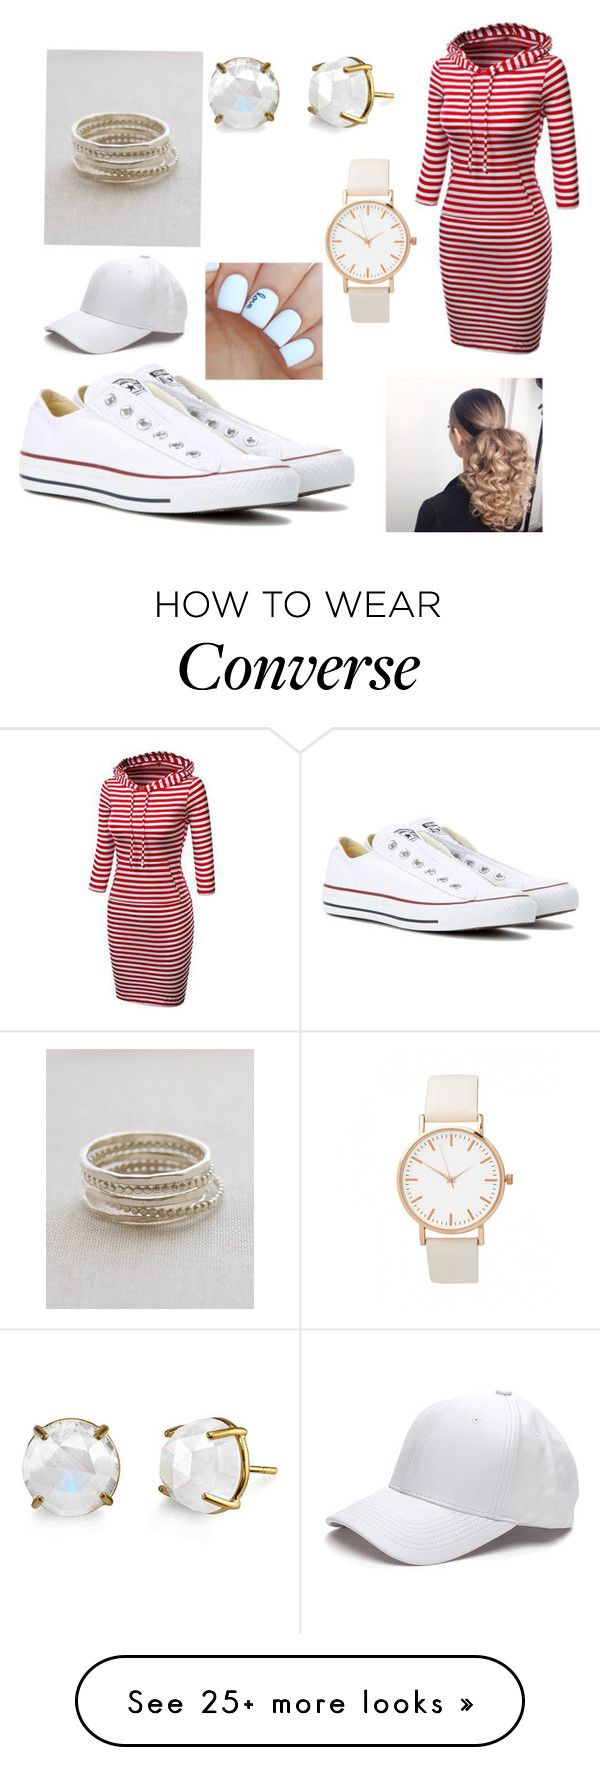 """Converse"" by nevaehsmith168 on Polyvore featuring Converse and Irene Neuwirth"